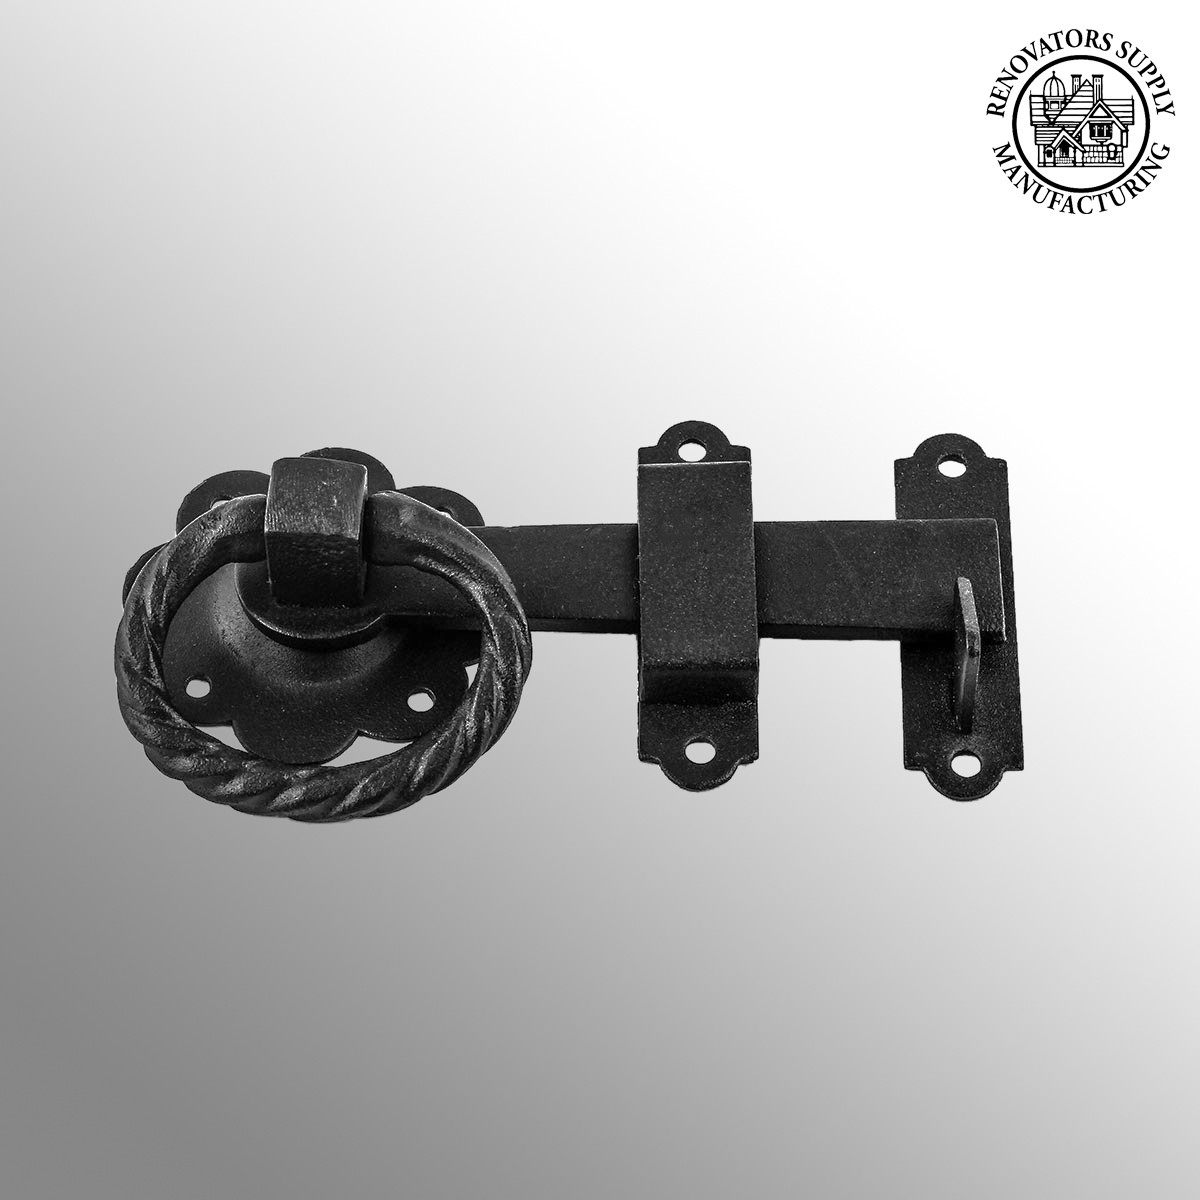 Wrought iron gate latch floral pattern black rustproof quot